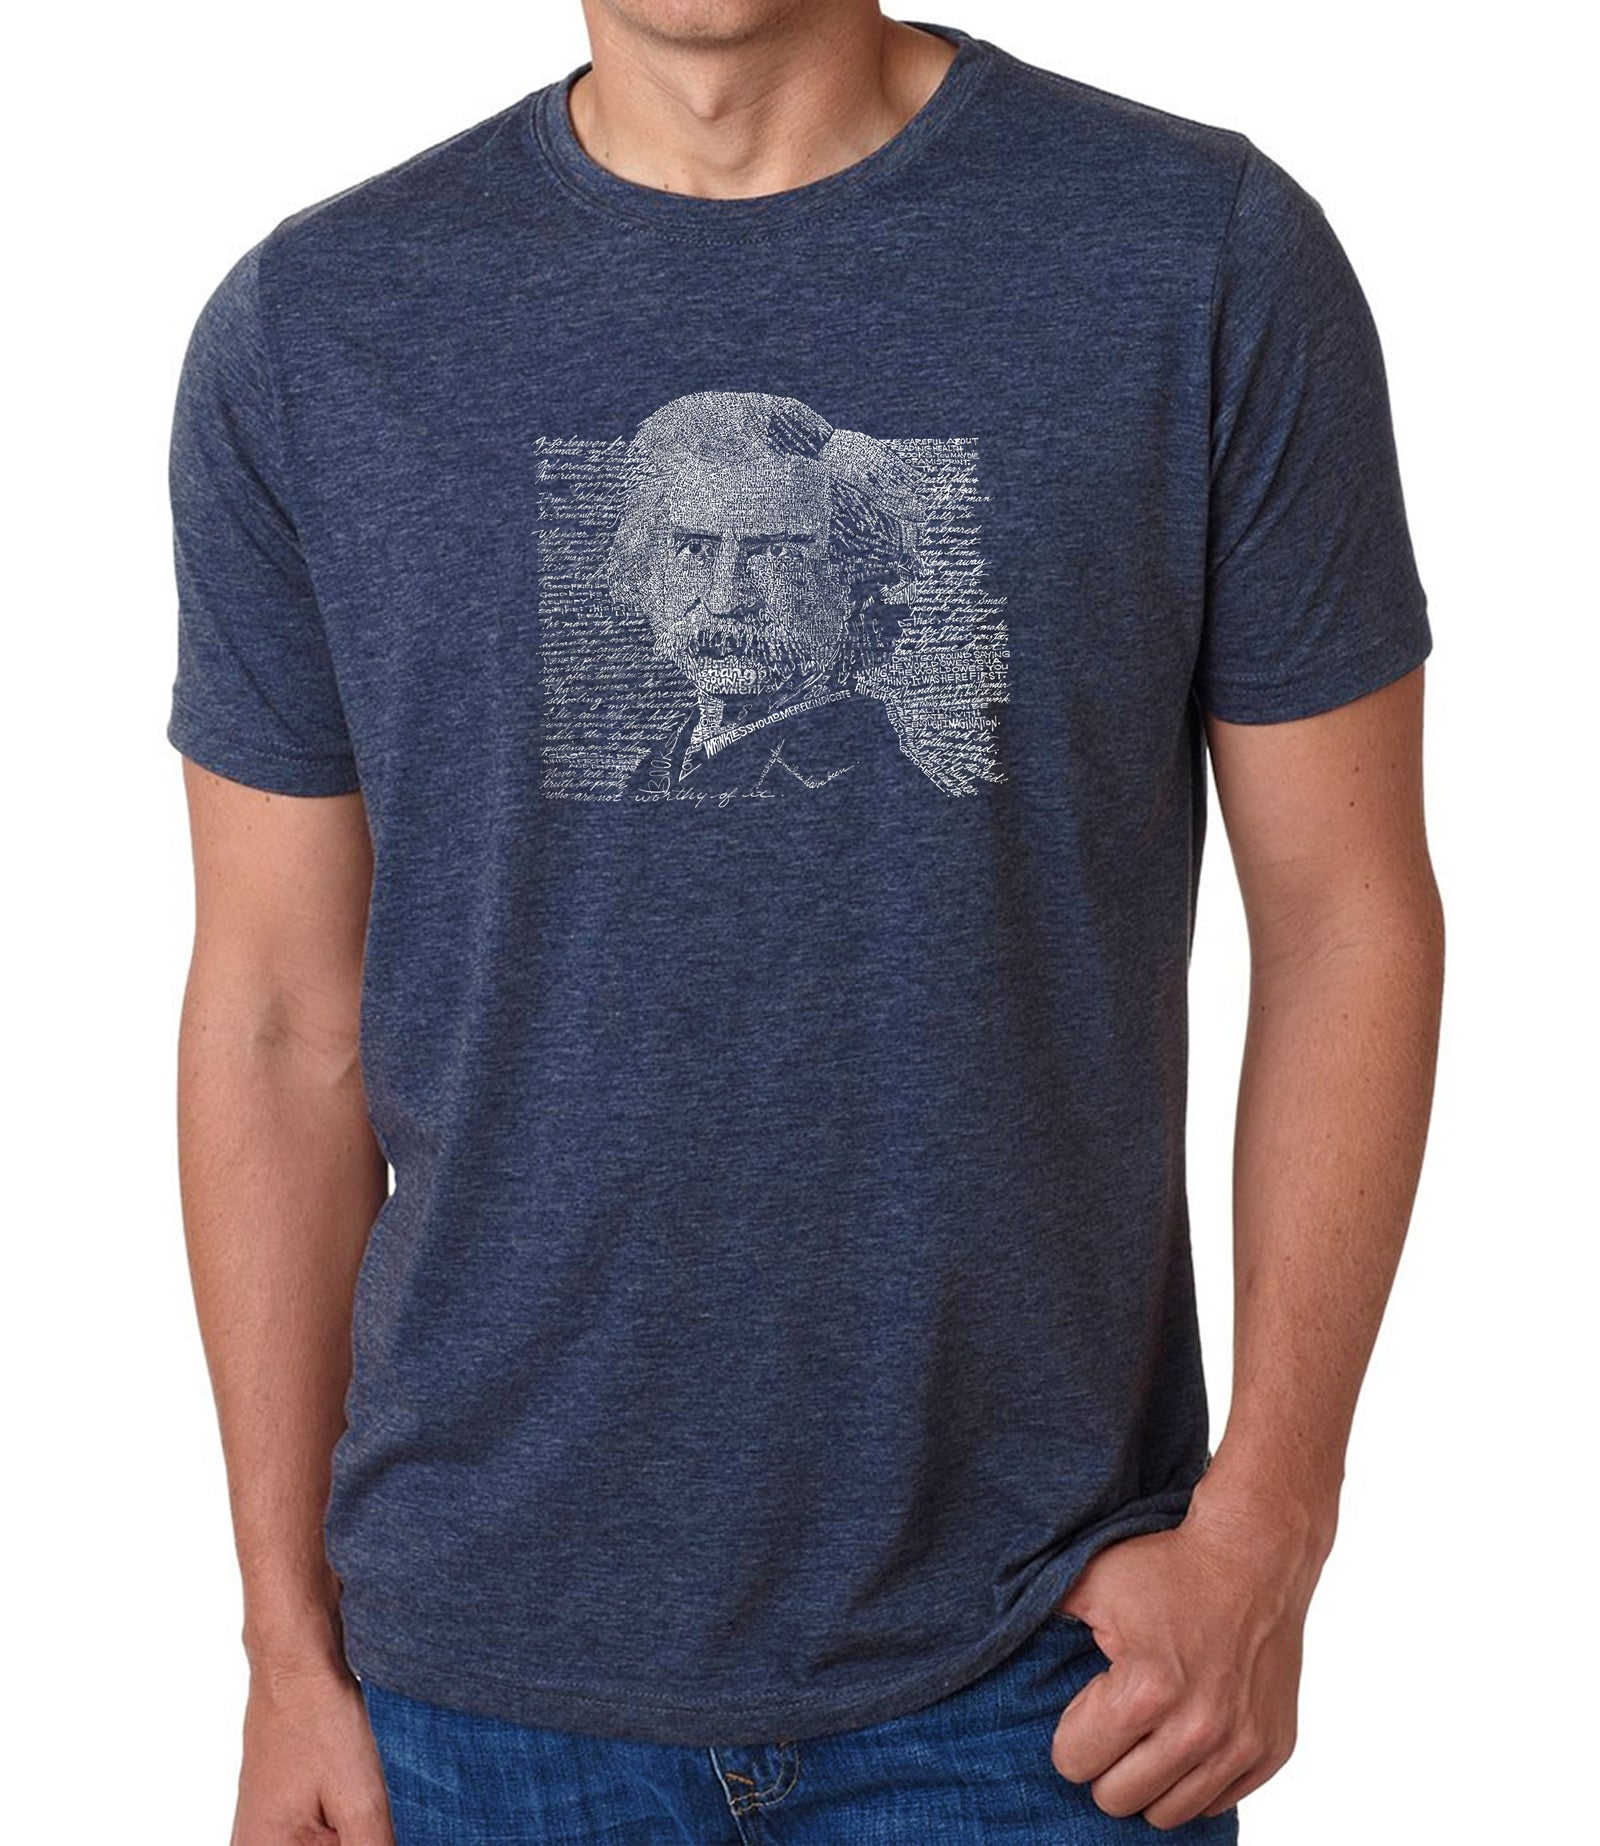 Men's Premium Blend Word Art T-shirt - Mark Twain